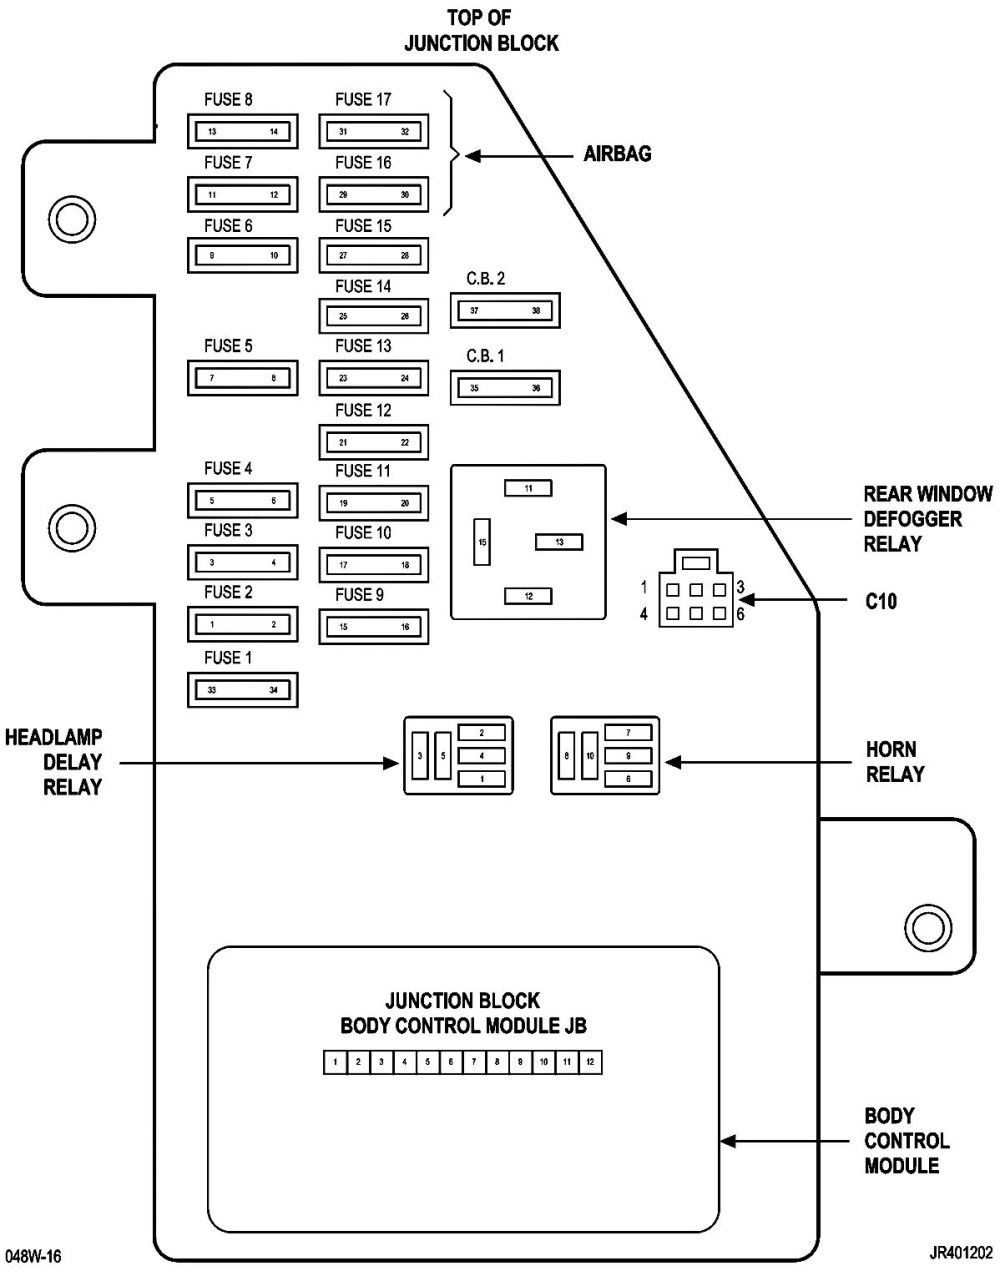 medium resolution of 2005 chrysler sebring fuse diagram wiring diagram used fuse box diagram for 2005 chrysler sebring